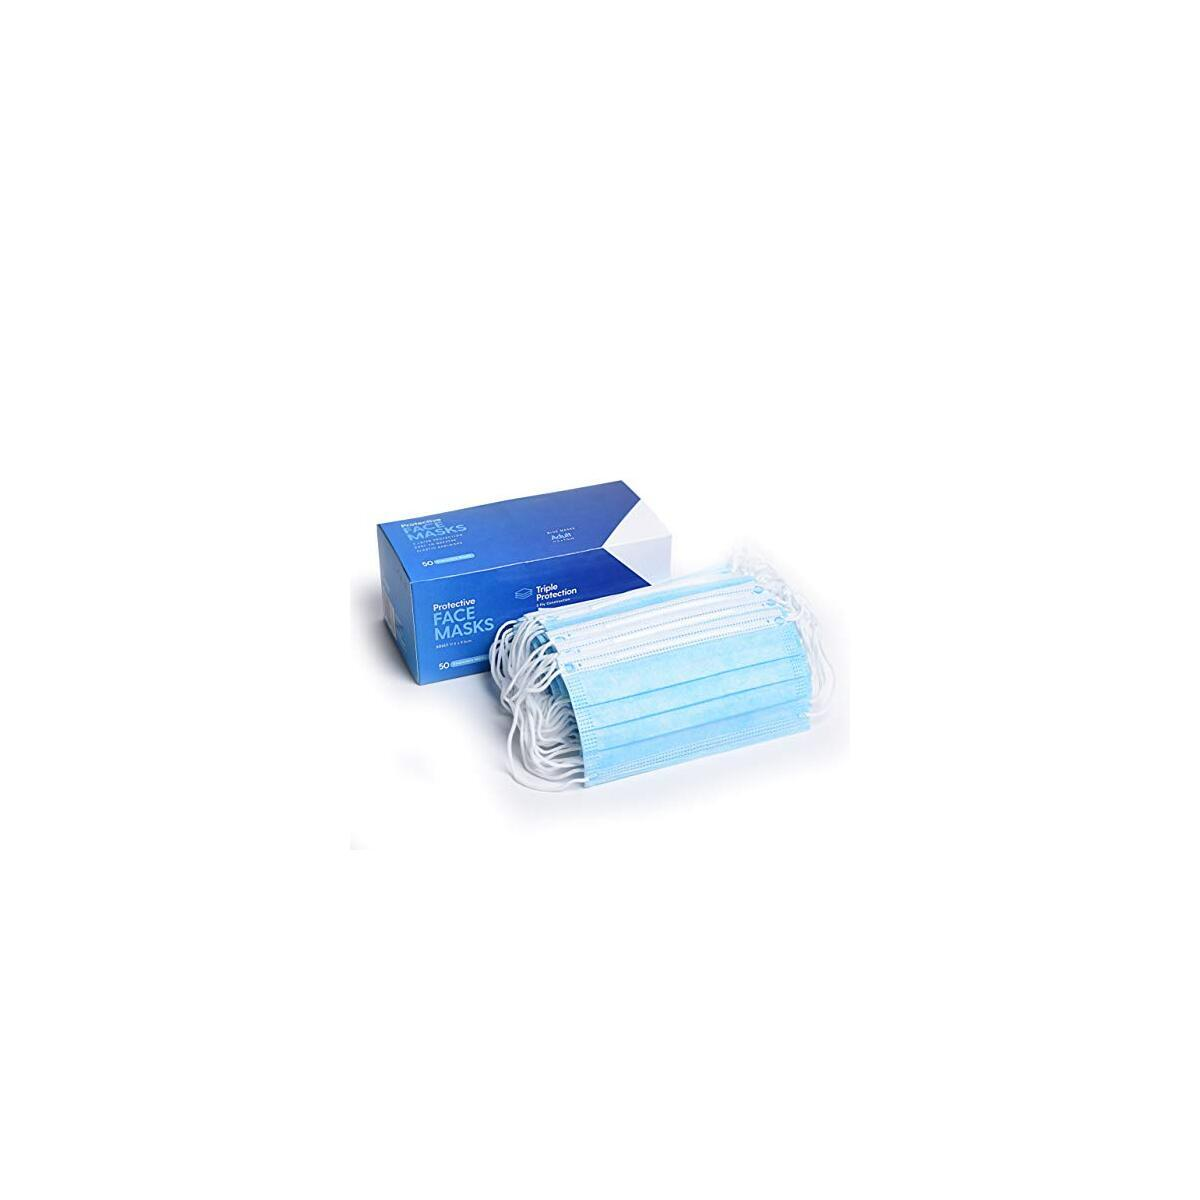 Disposable 3 Ply Face Masks - 20 x 50 Count Boxes (1000) by Milliard